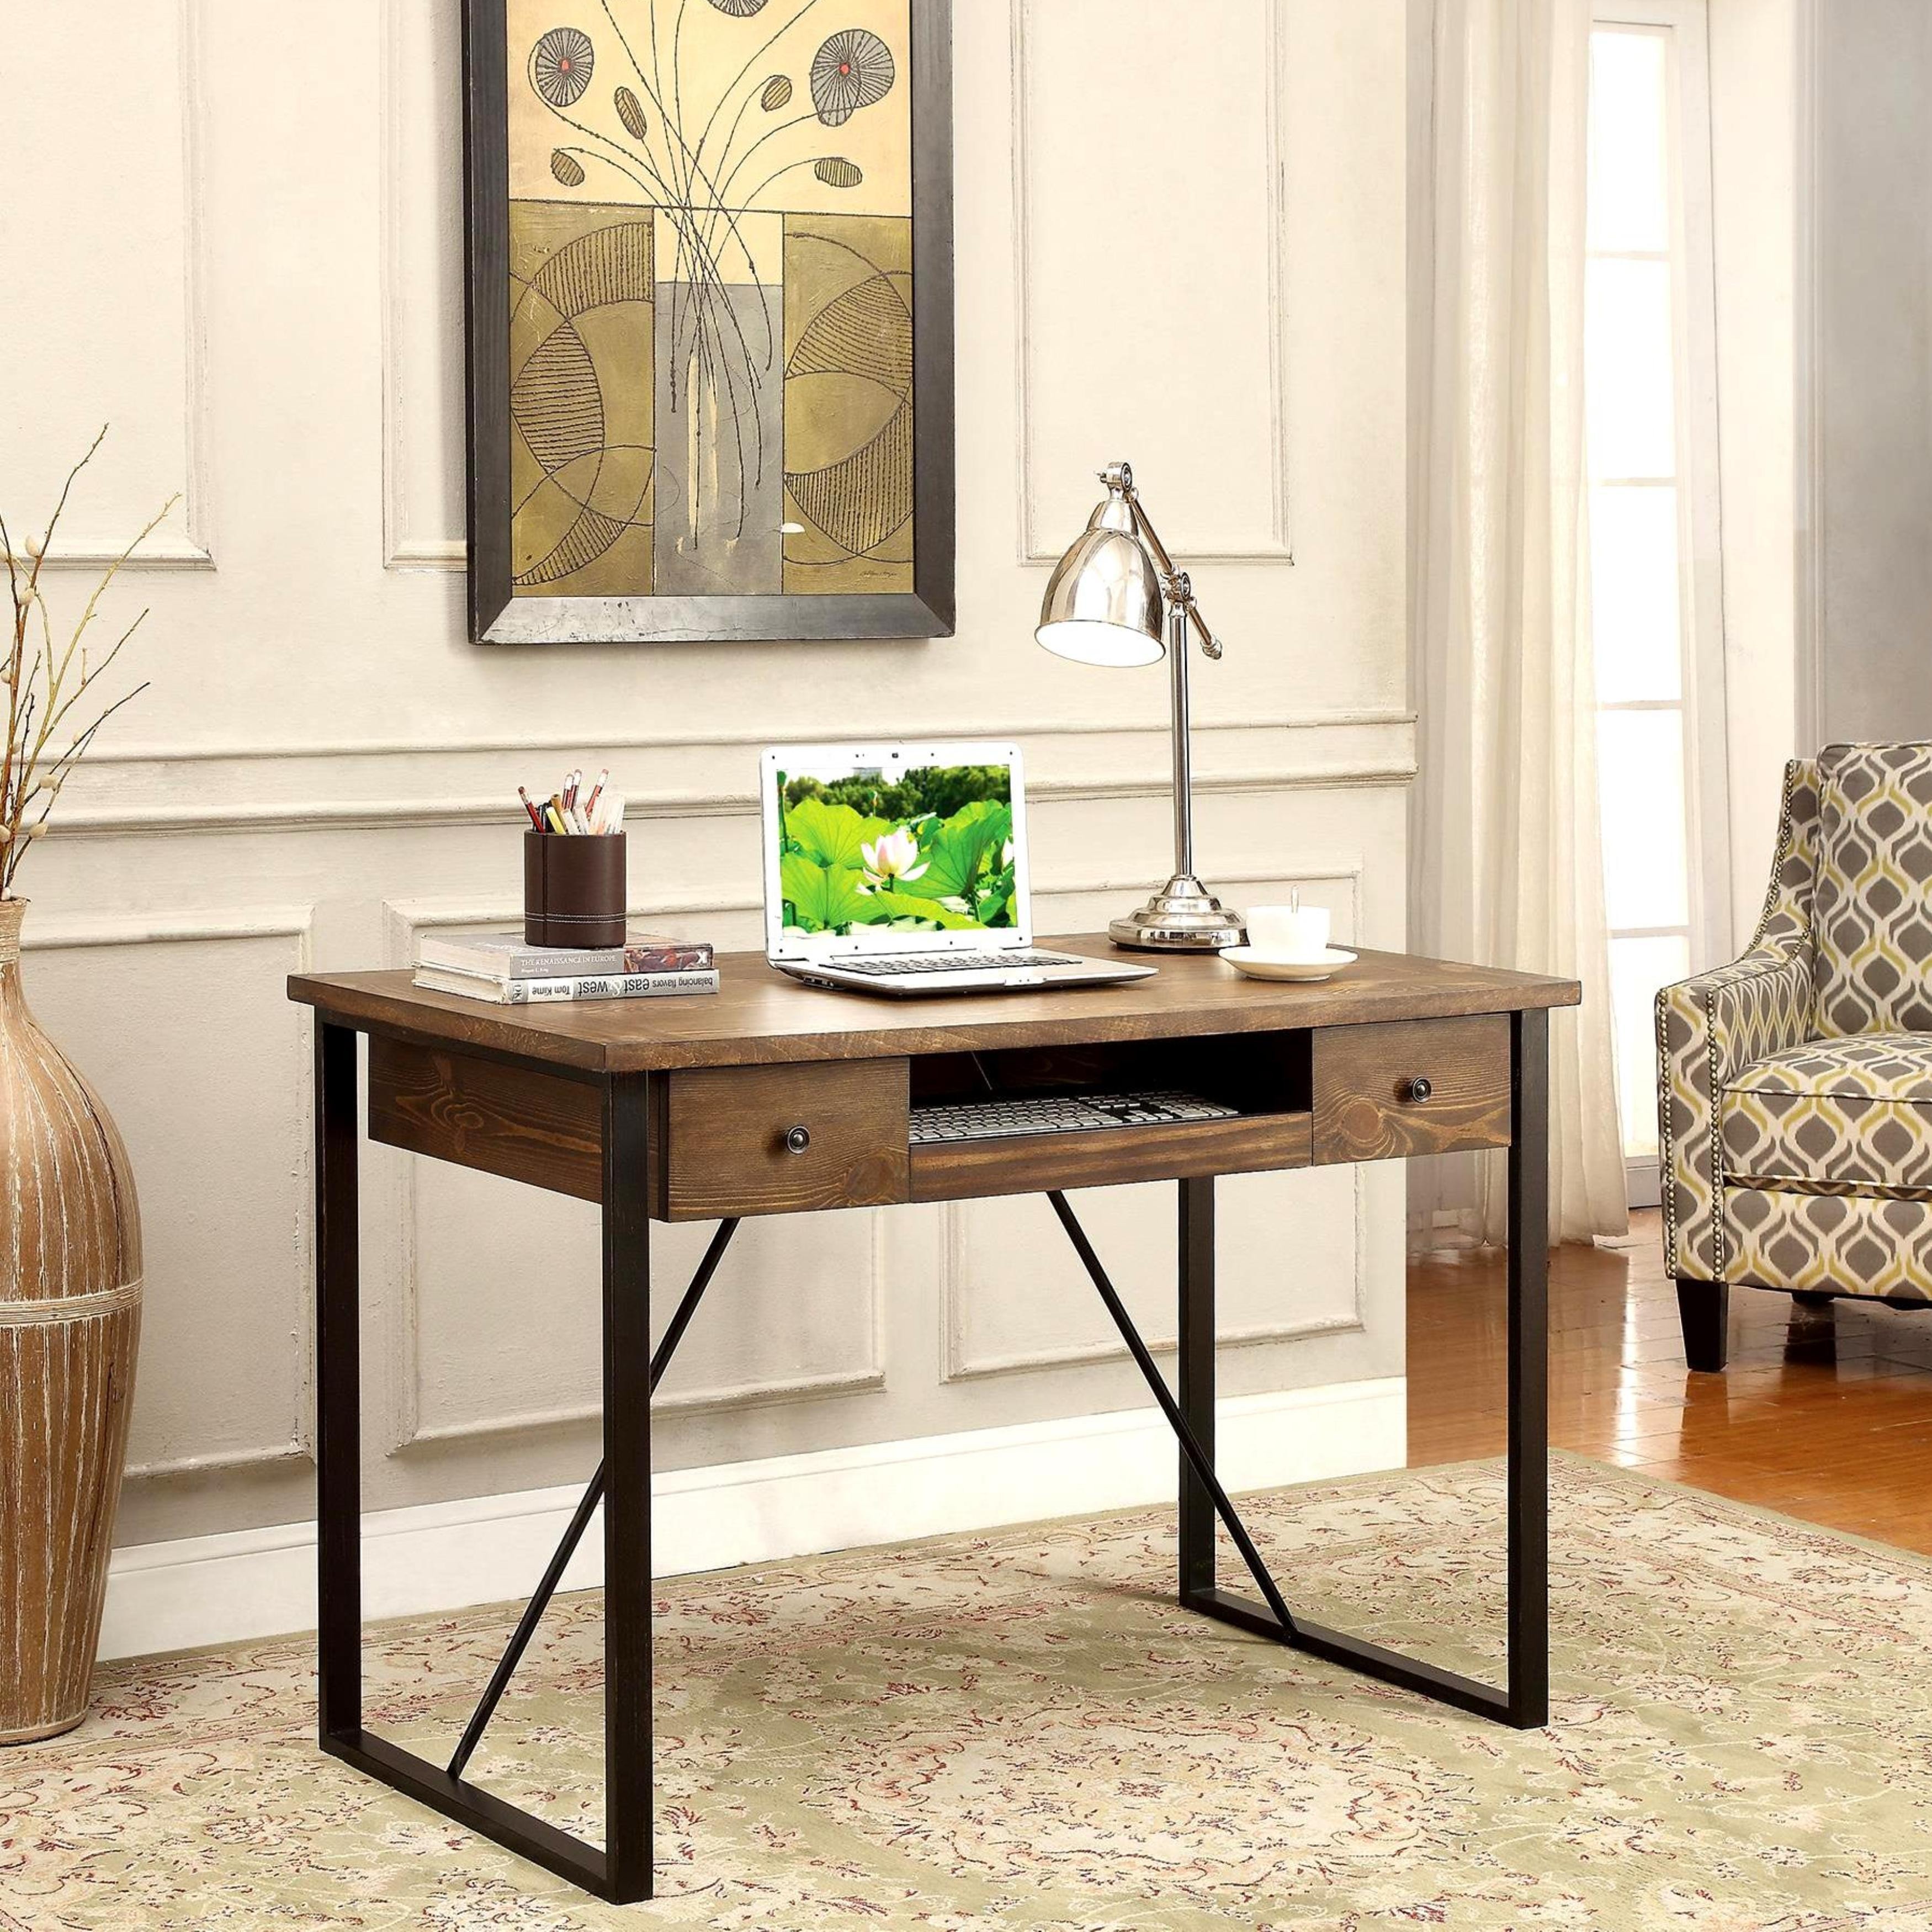 Shop Black Friday Deals On Schevron Mid Century Industrial Rustic Design Home Office Computer Writing Desk With Keyboard Drawer Overstock 11817760